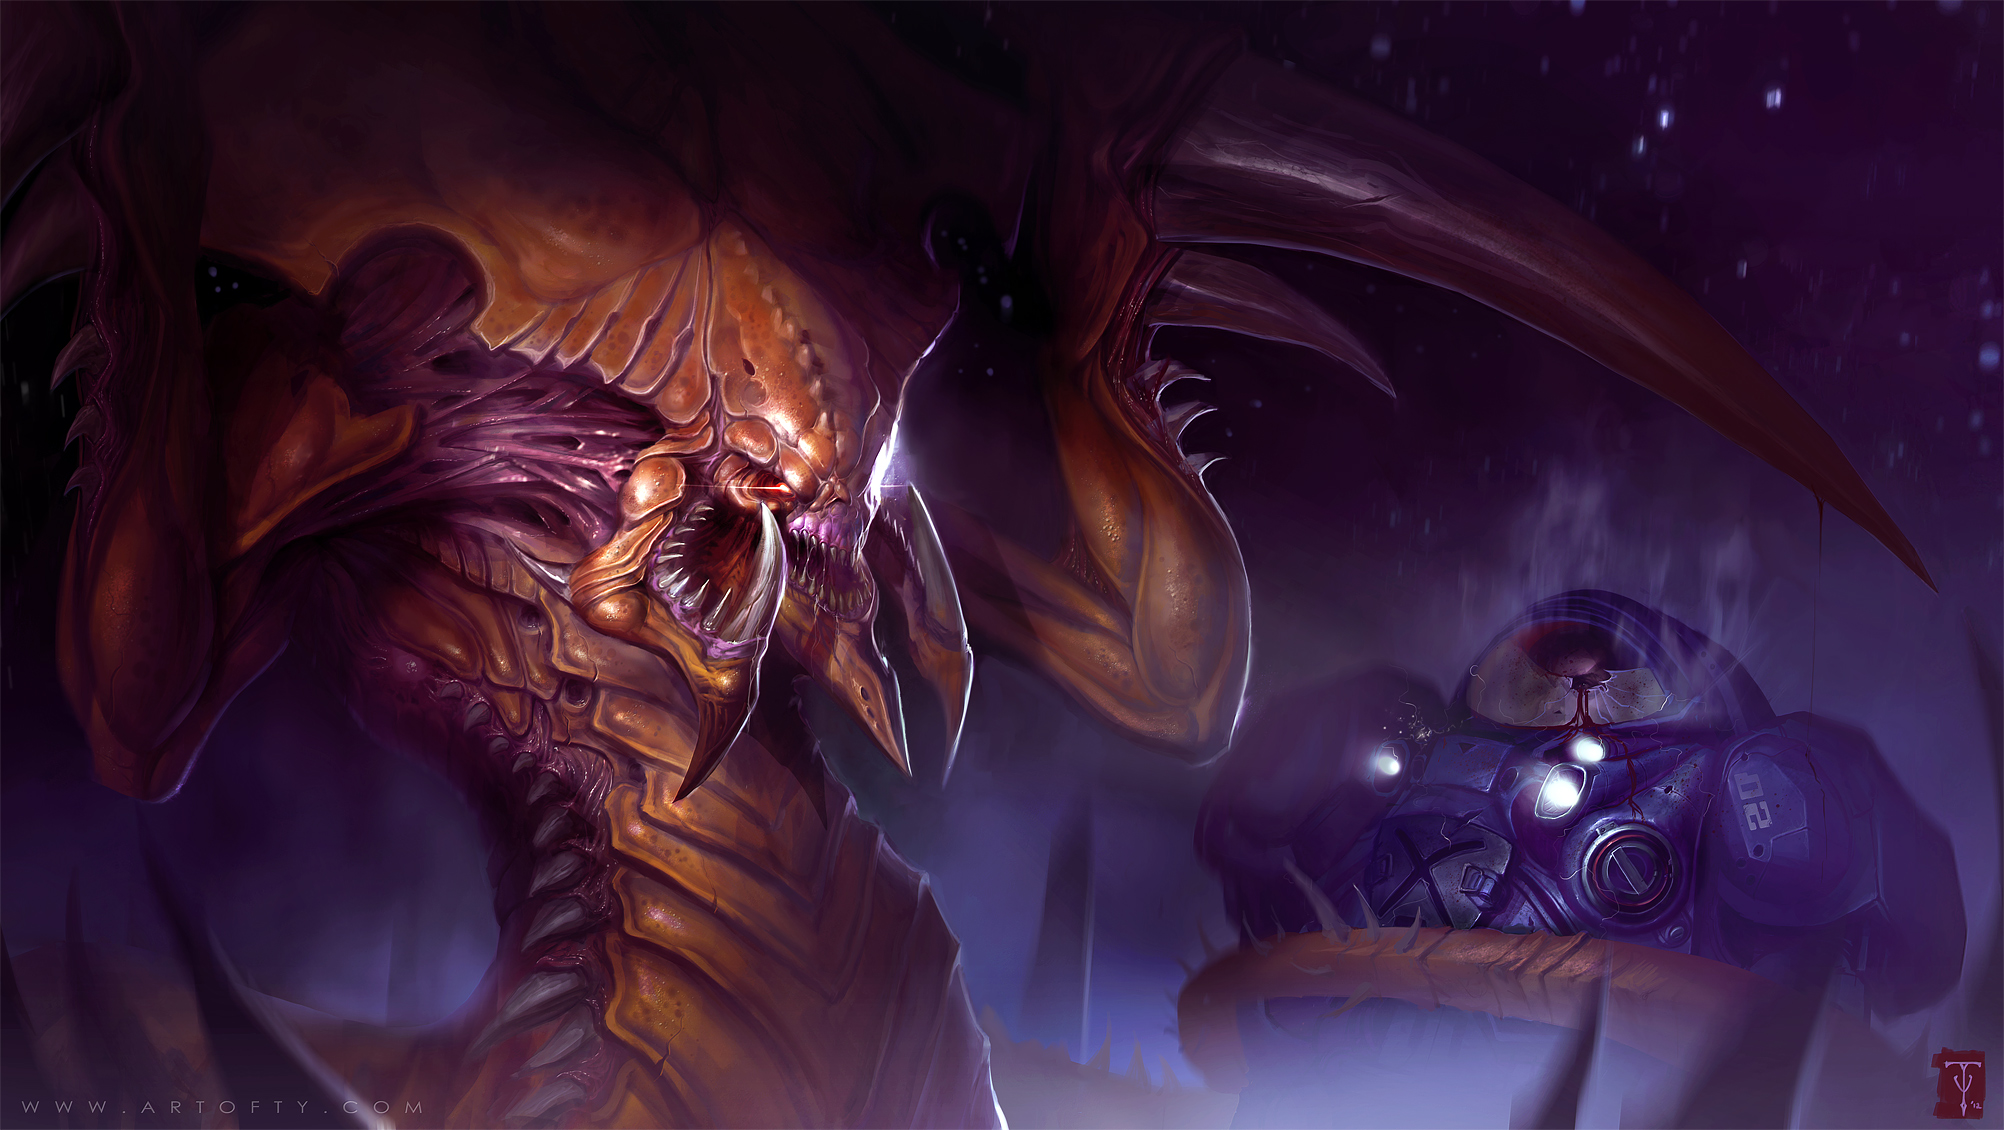 Infinity Seven Takes On The Coming Zerg Invasion By